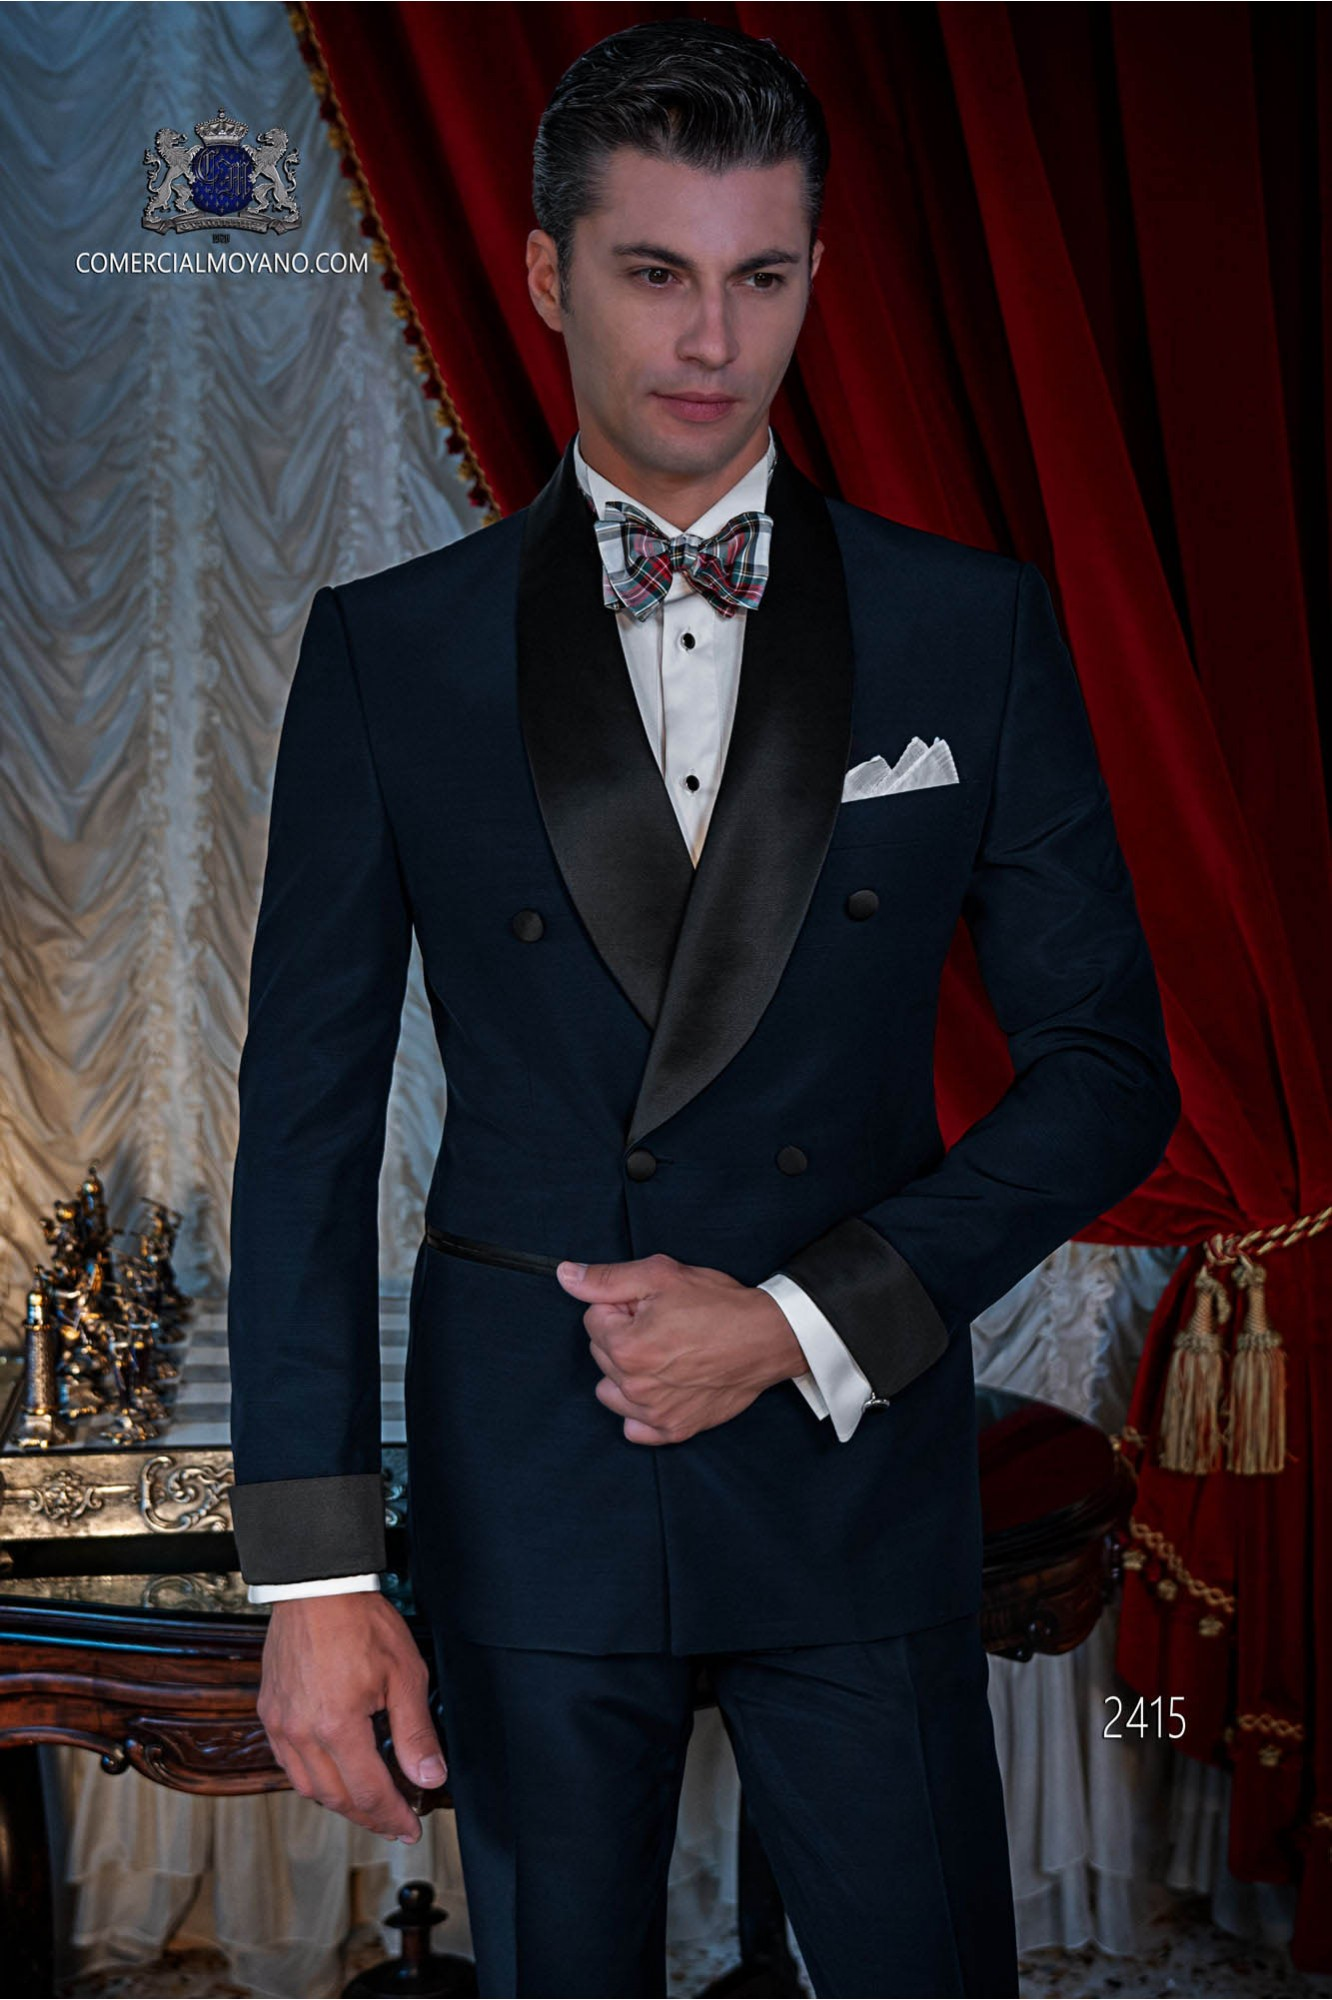 Italian double breasted navy blue tuxedo with satin lapels